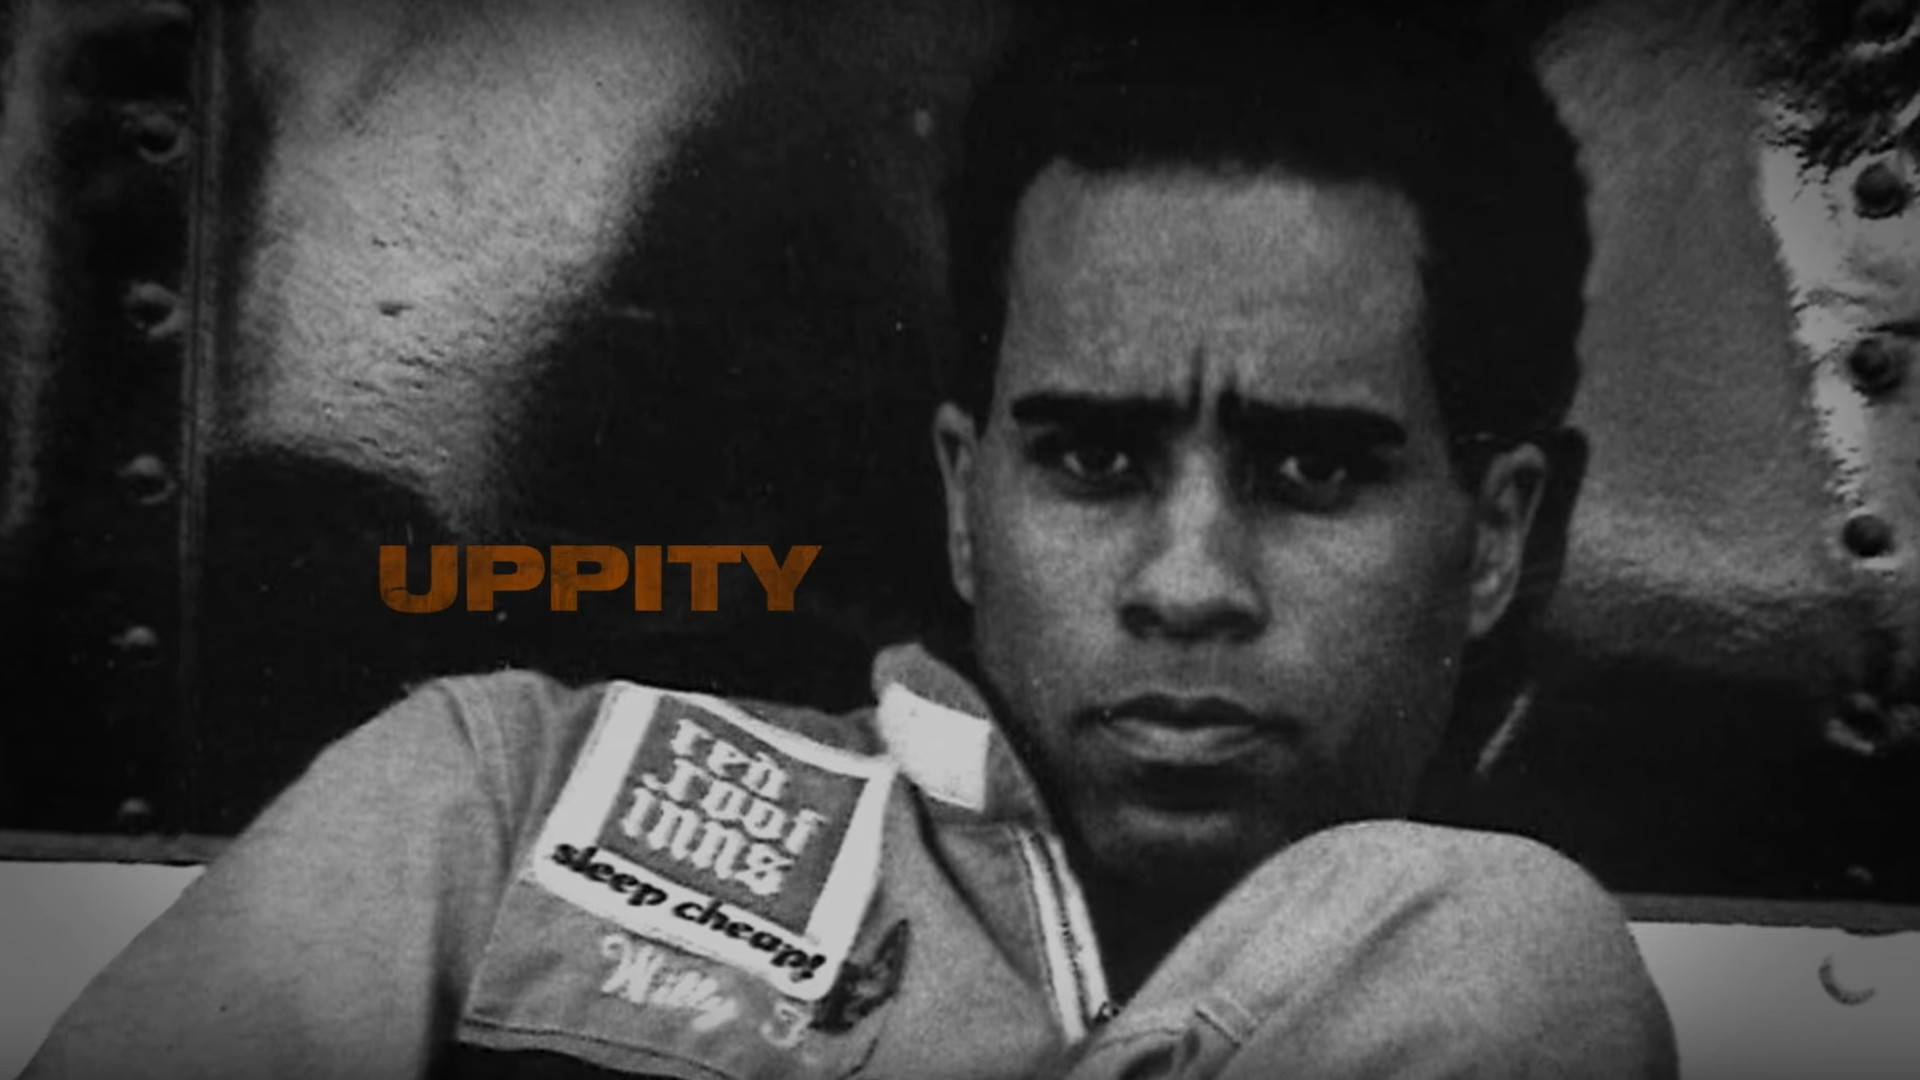 """Uppity: The Willy T. Ribbs Story"""